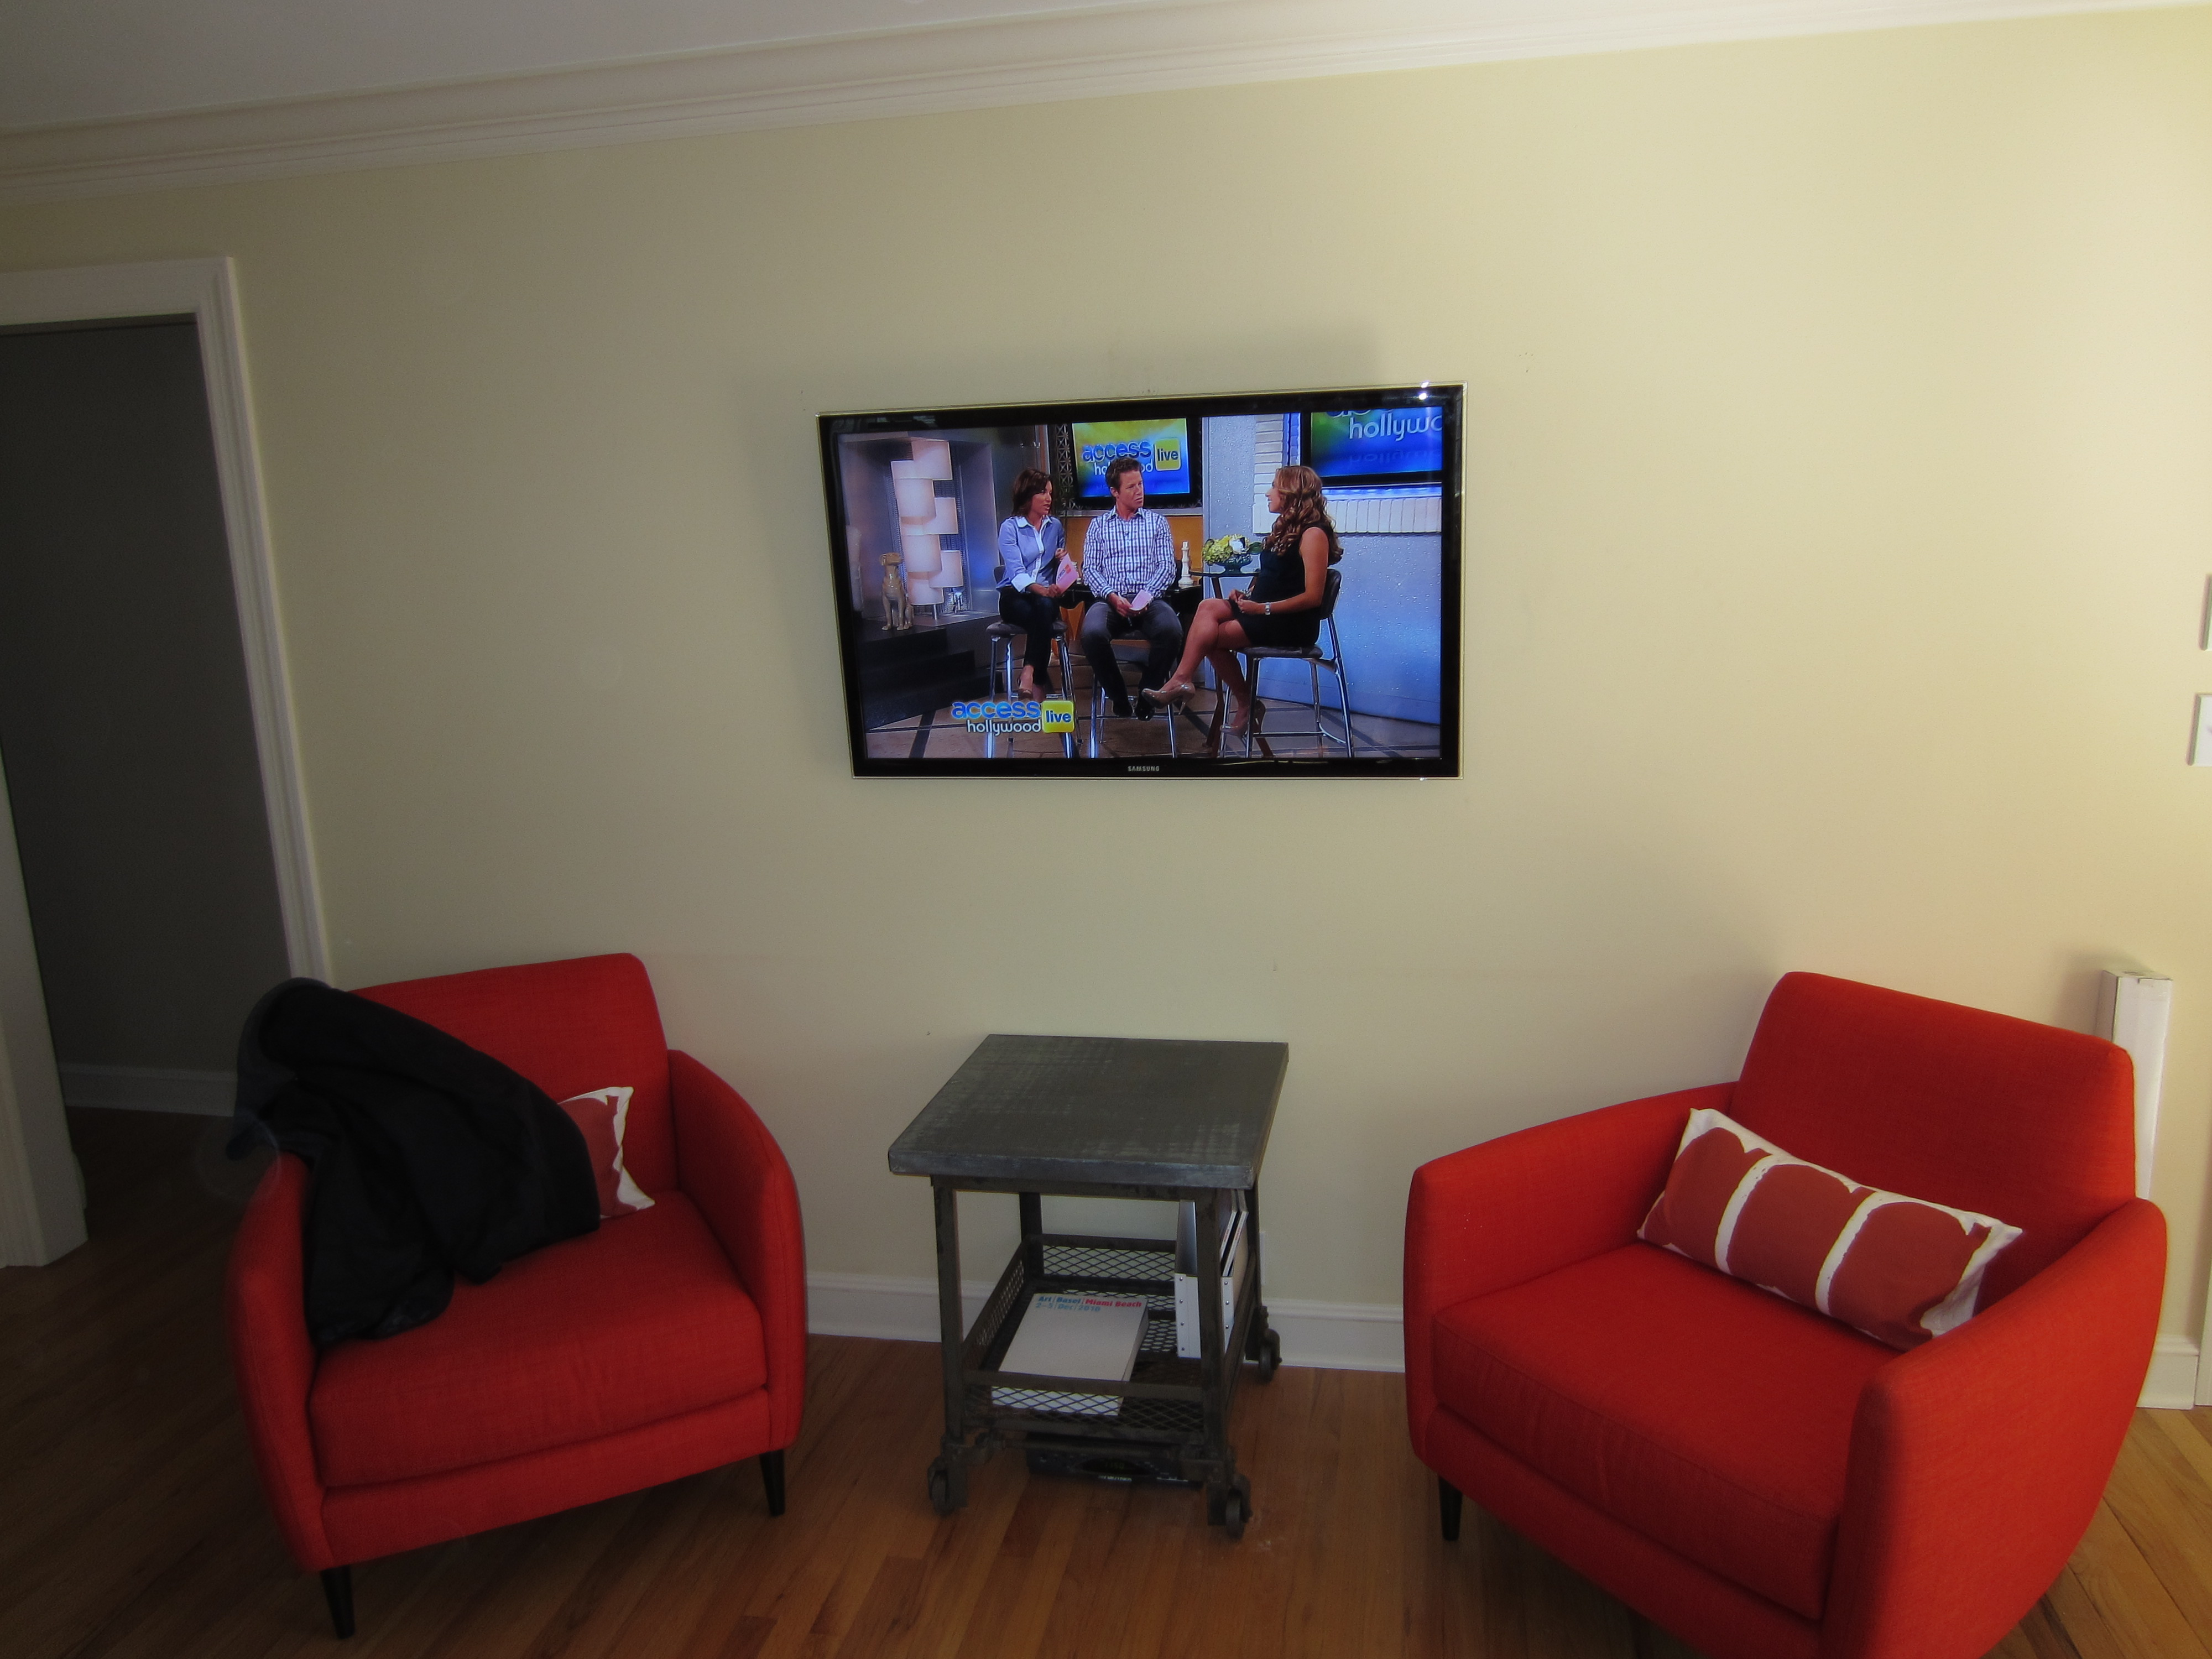 Fairfield ct tv install on wall hiding all wires for Disguise tv on wall